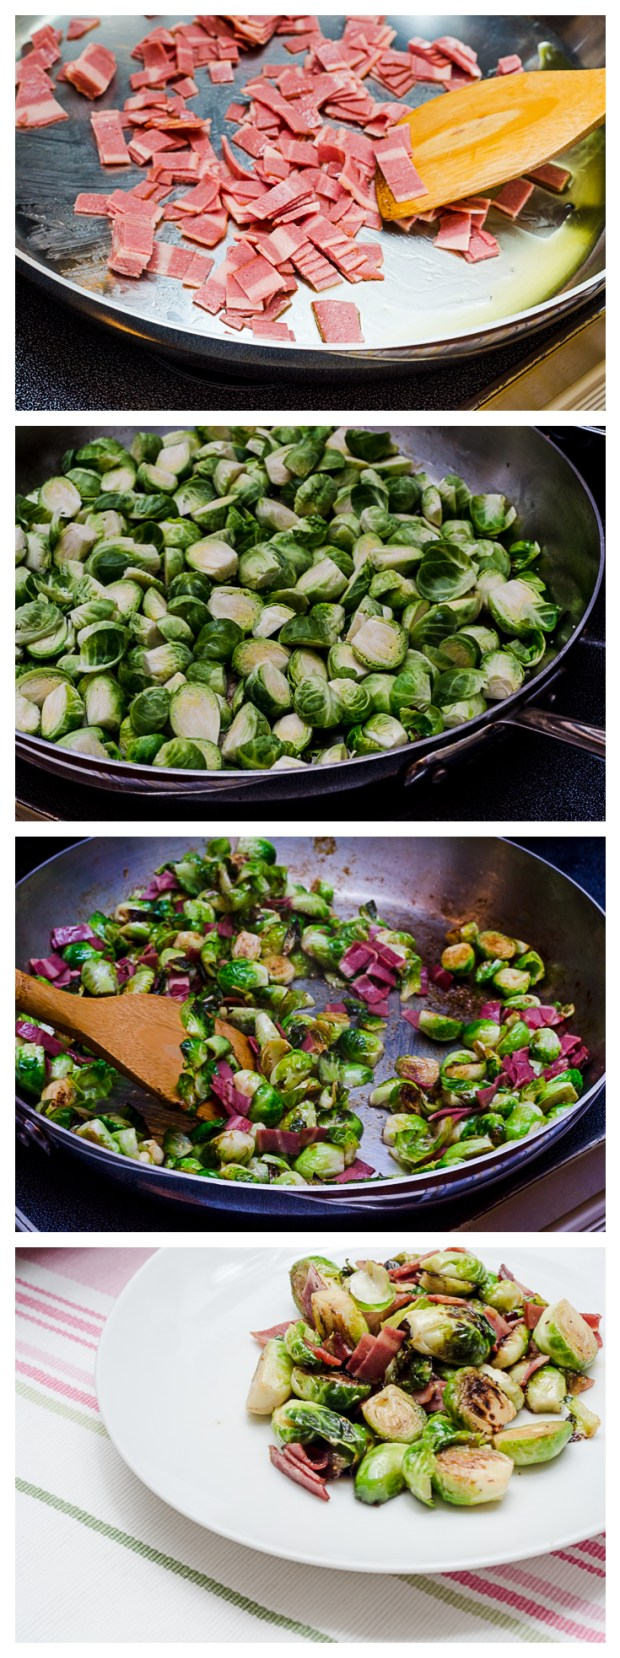 making charred brussels sprouts with fig glaze